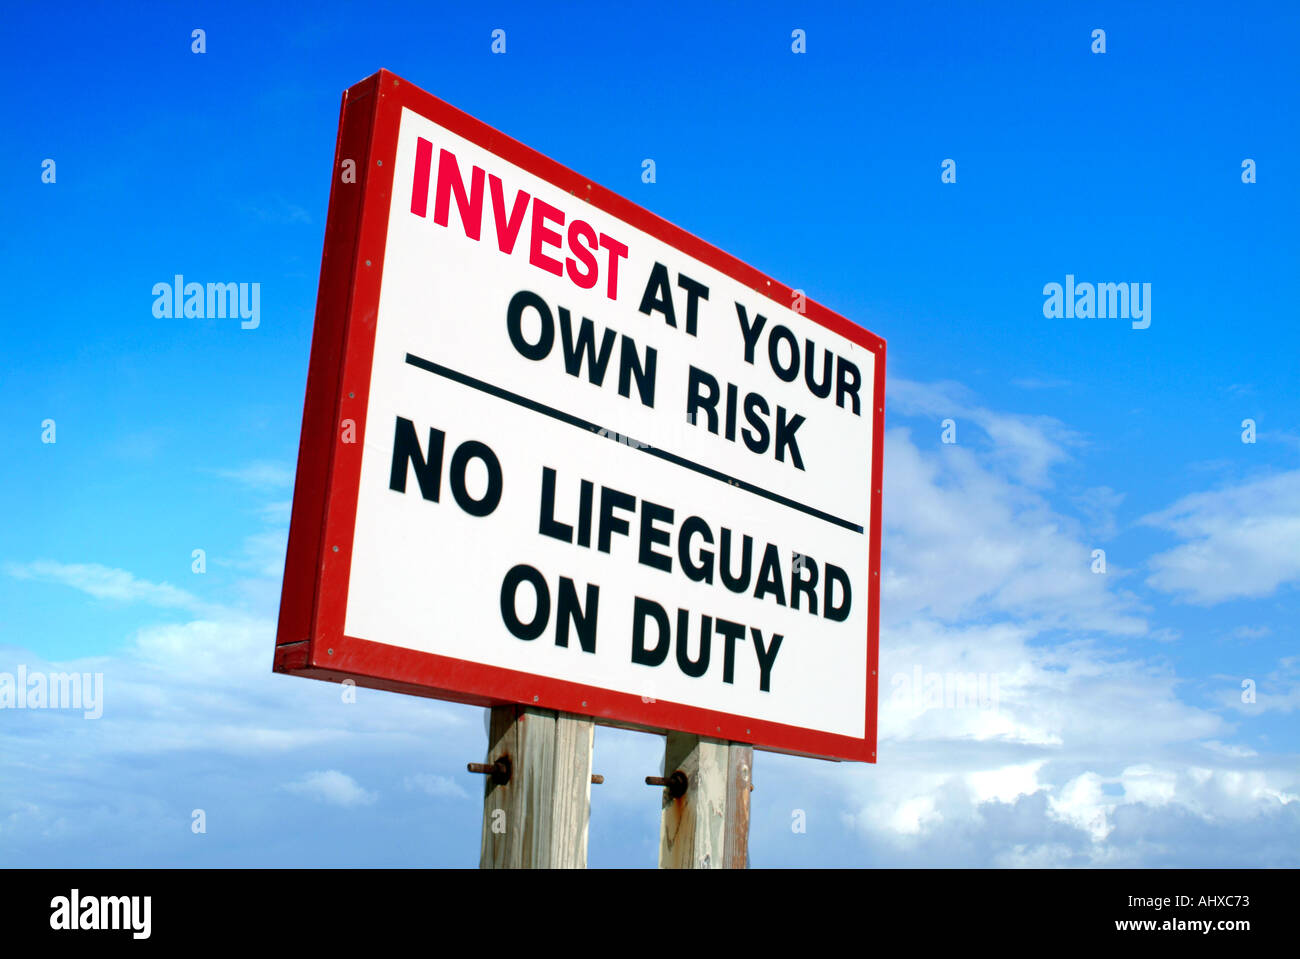 Invest at your own risk sign No lifeguard on duty - Stock Image